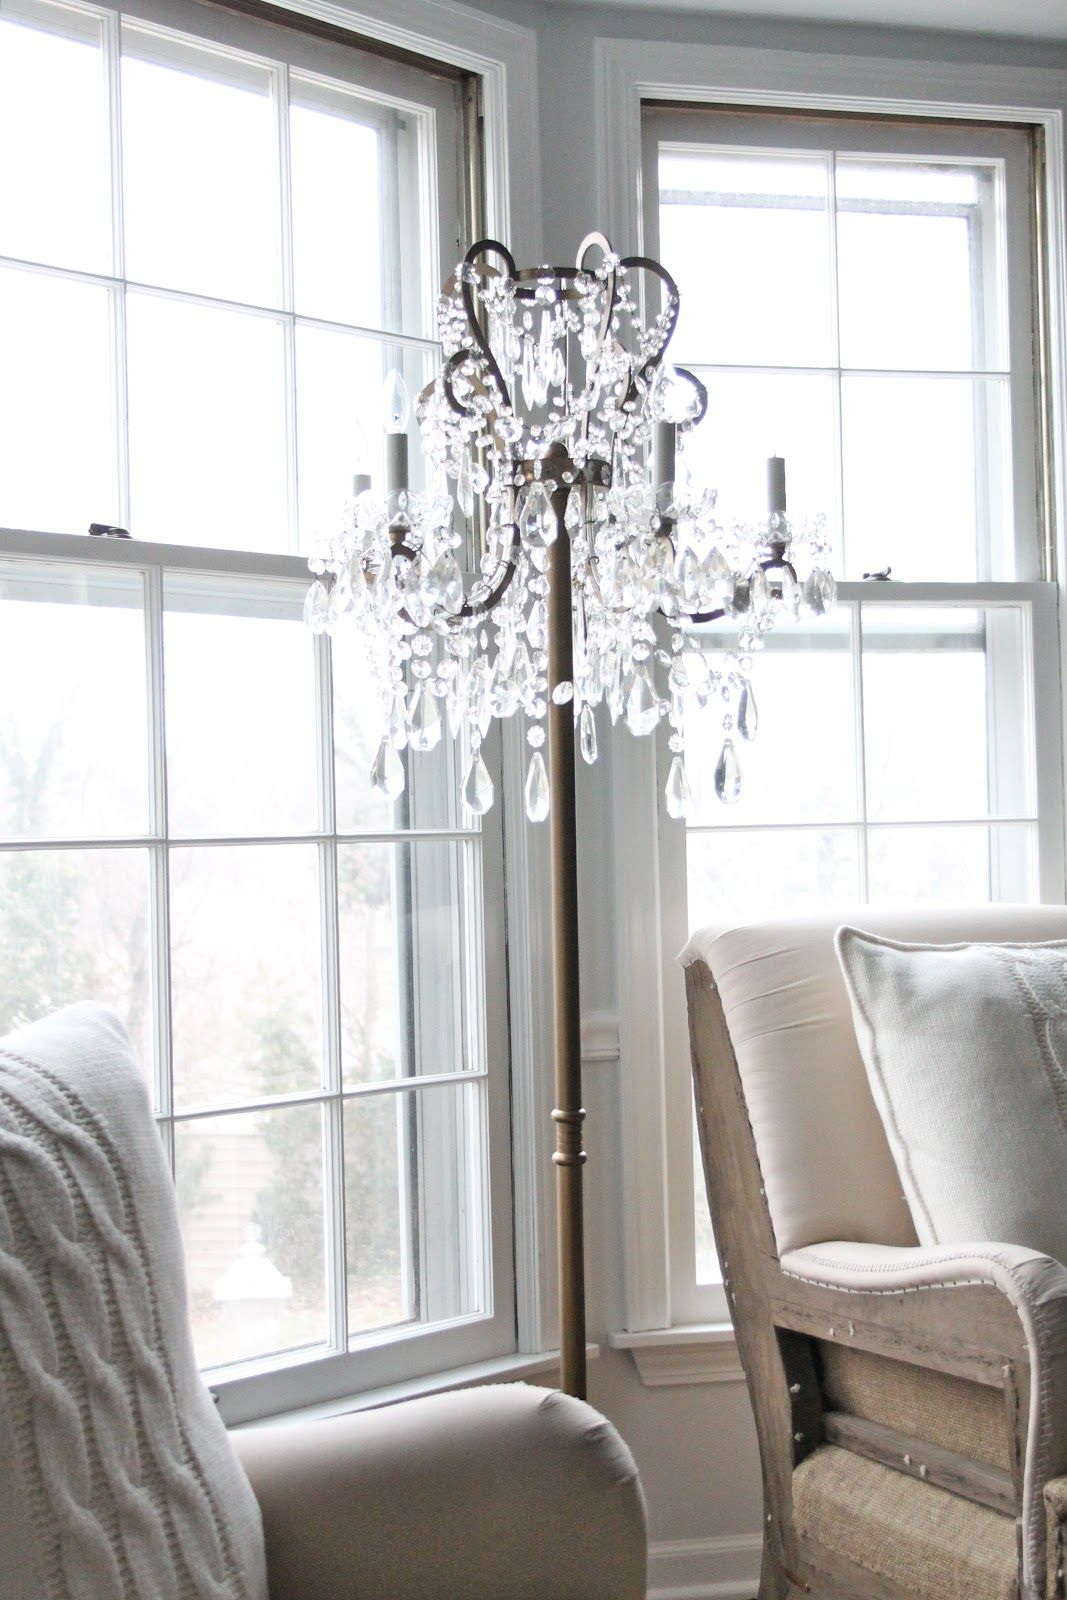 Our living room julie blanner entertaining design that chandelier floor lamp diy chandeliers are decorative or ornamental light fixtures that are employed for ceiling lighting arubaitofo Gallery